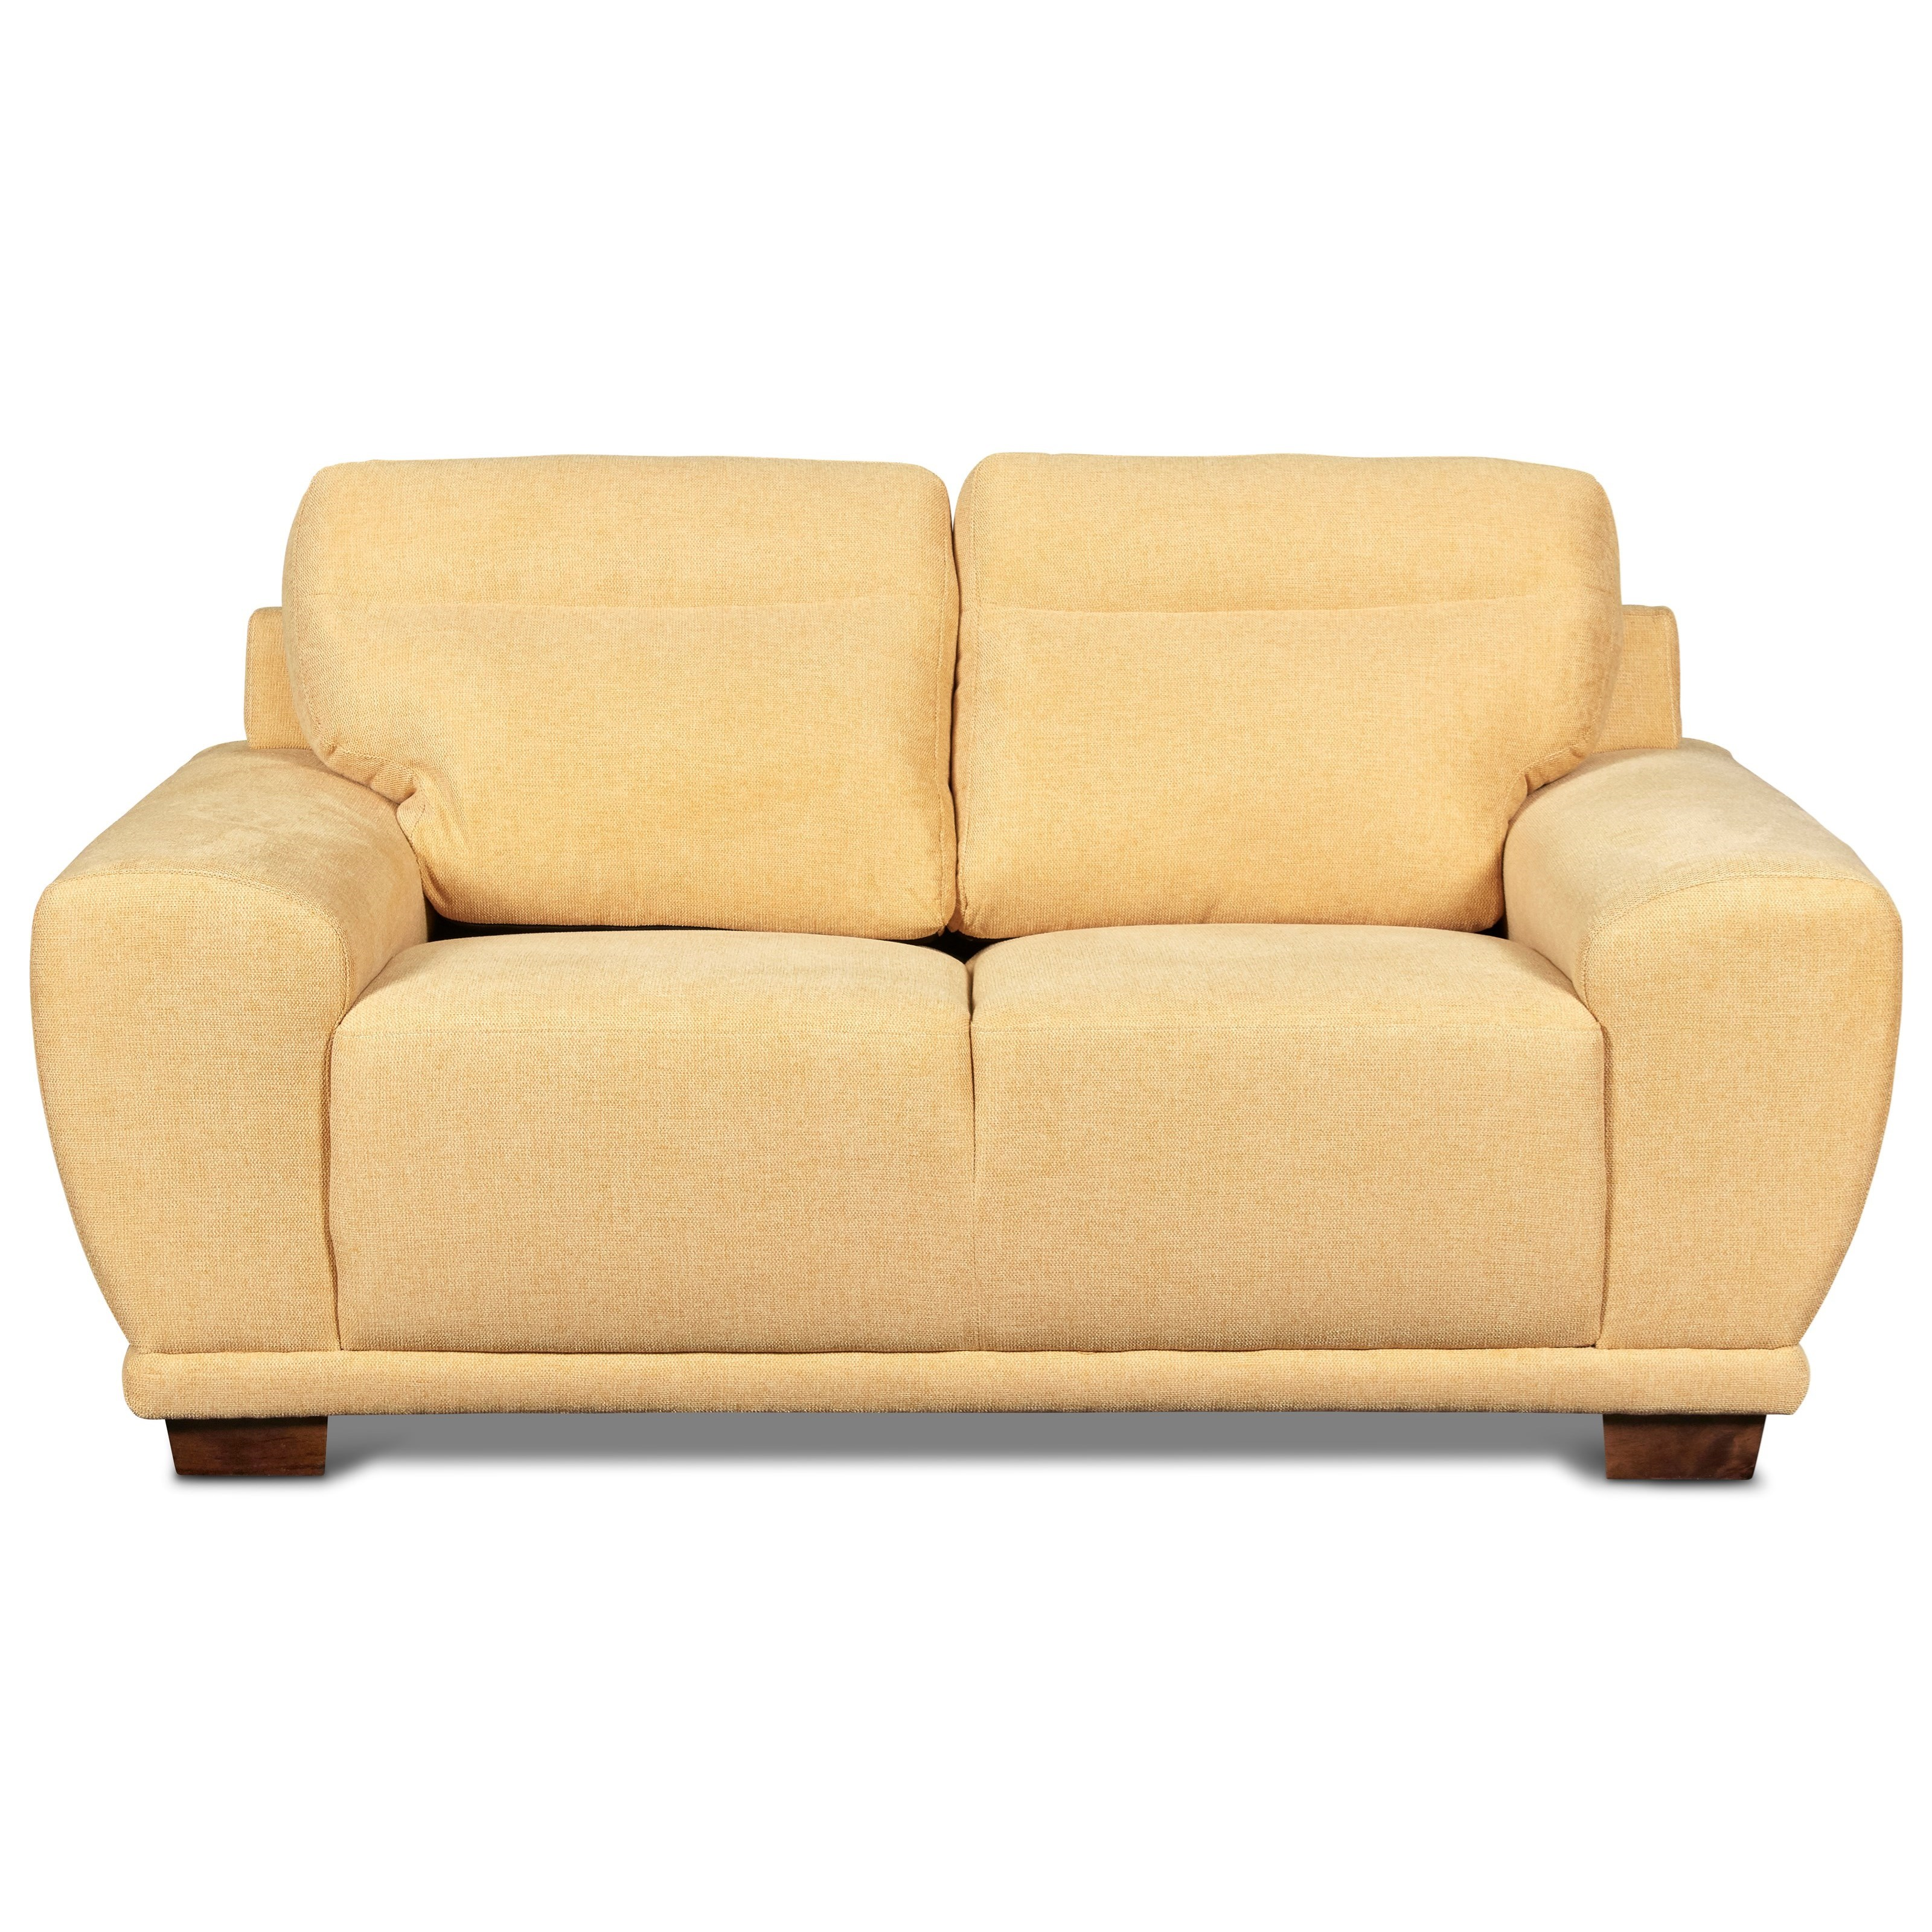 Bolero Loveseat by New Classic at Rife's Home Furniture